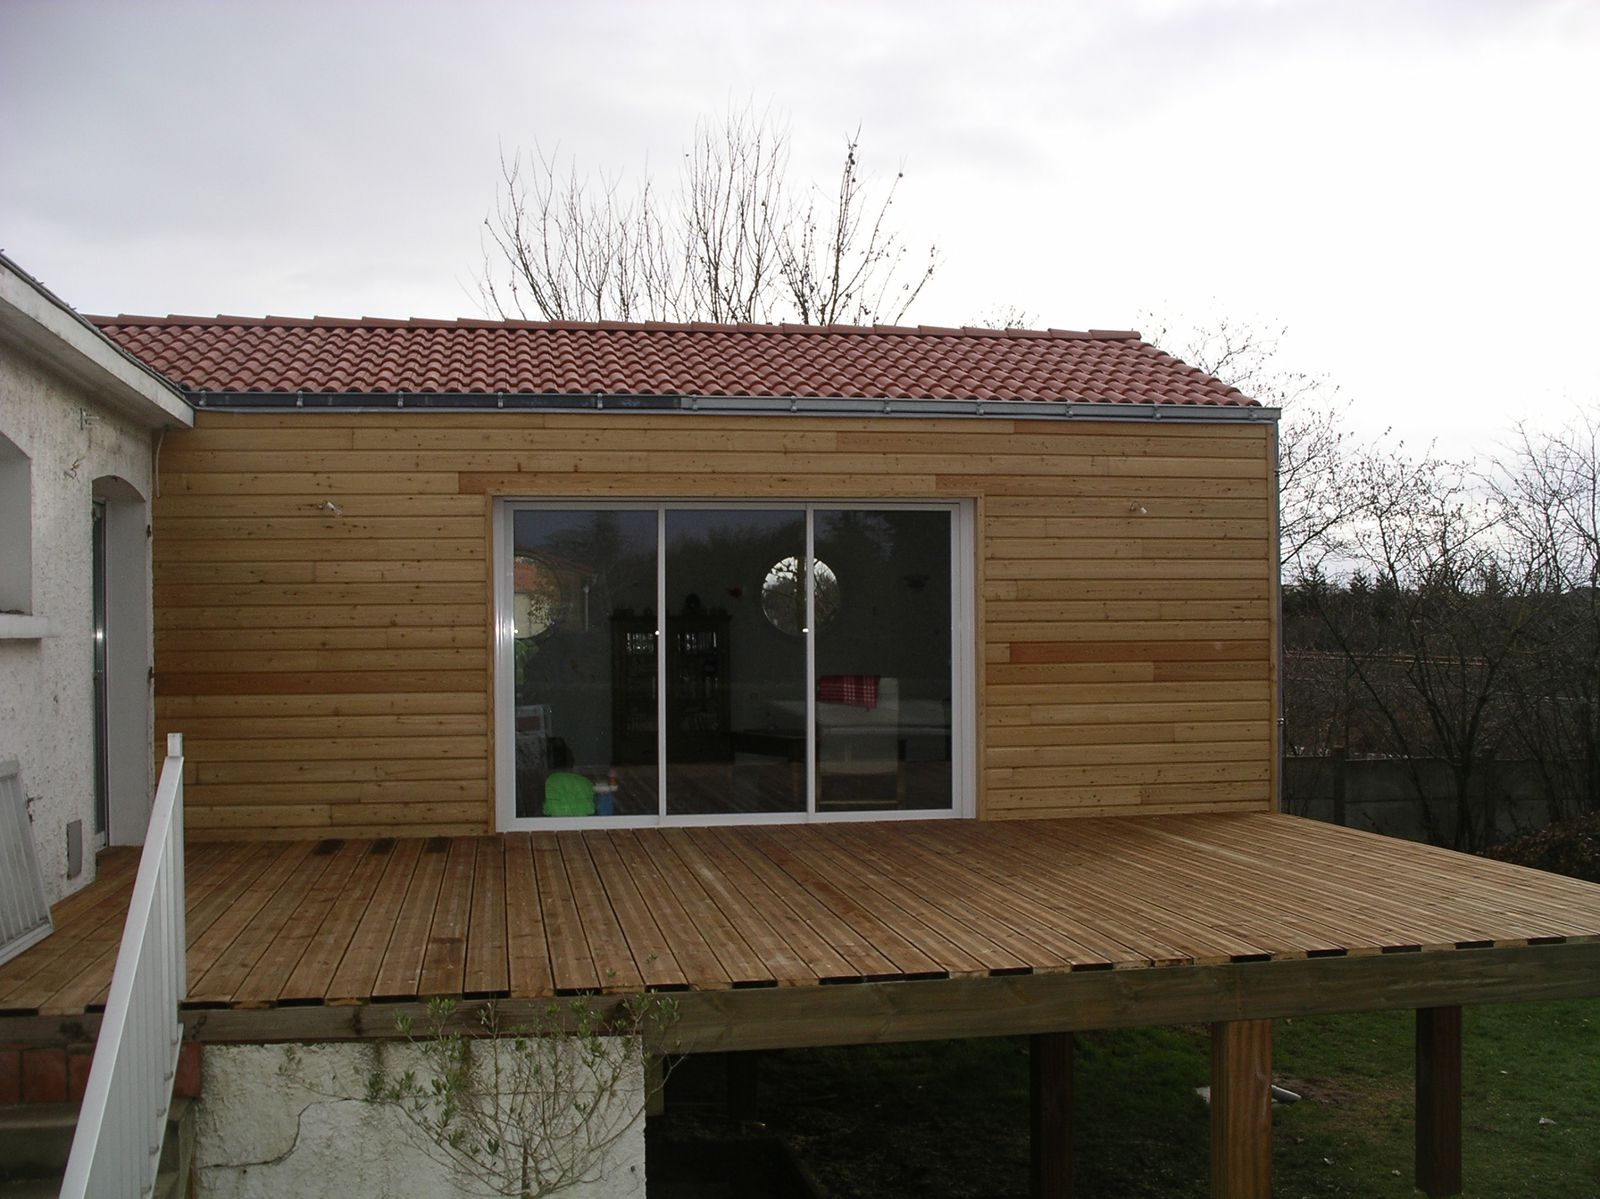 Exemple d 39 extension en ossature bois sur pilotis en iroko for Exemple agrandissement maison